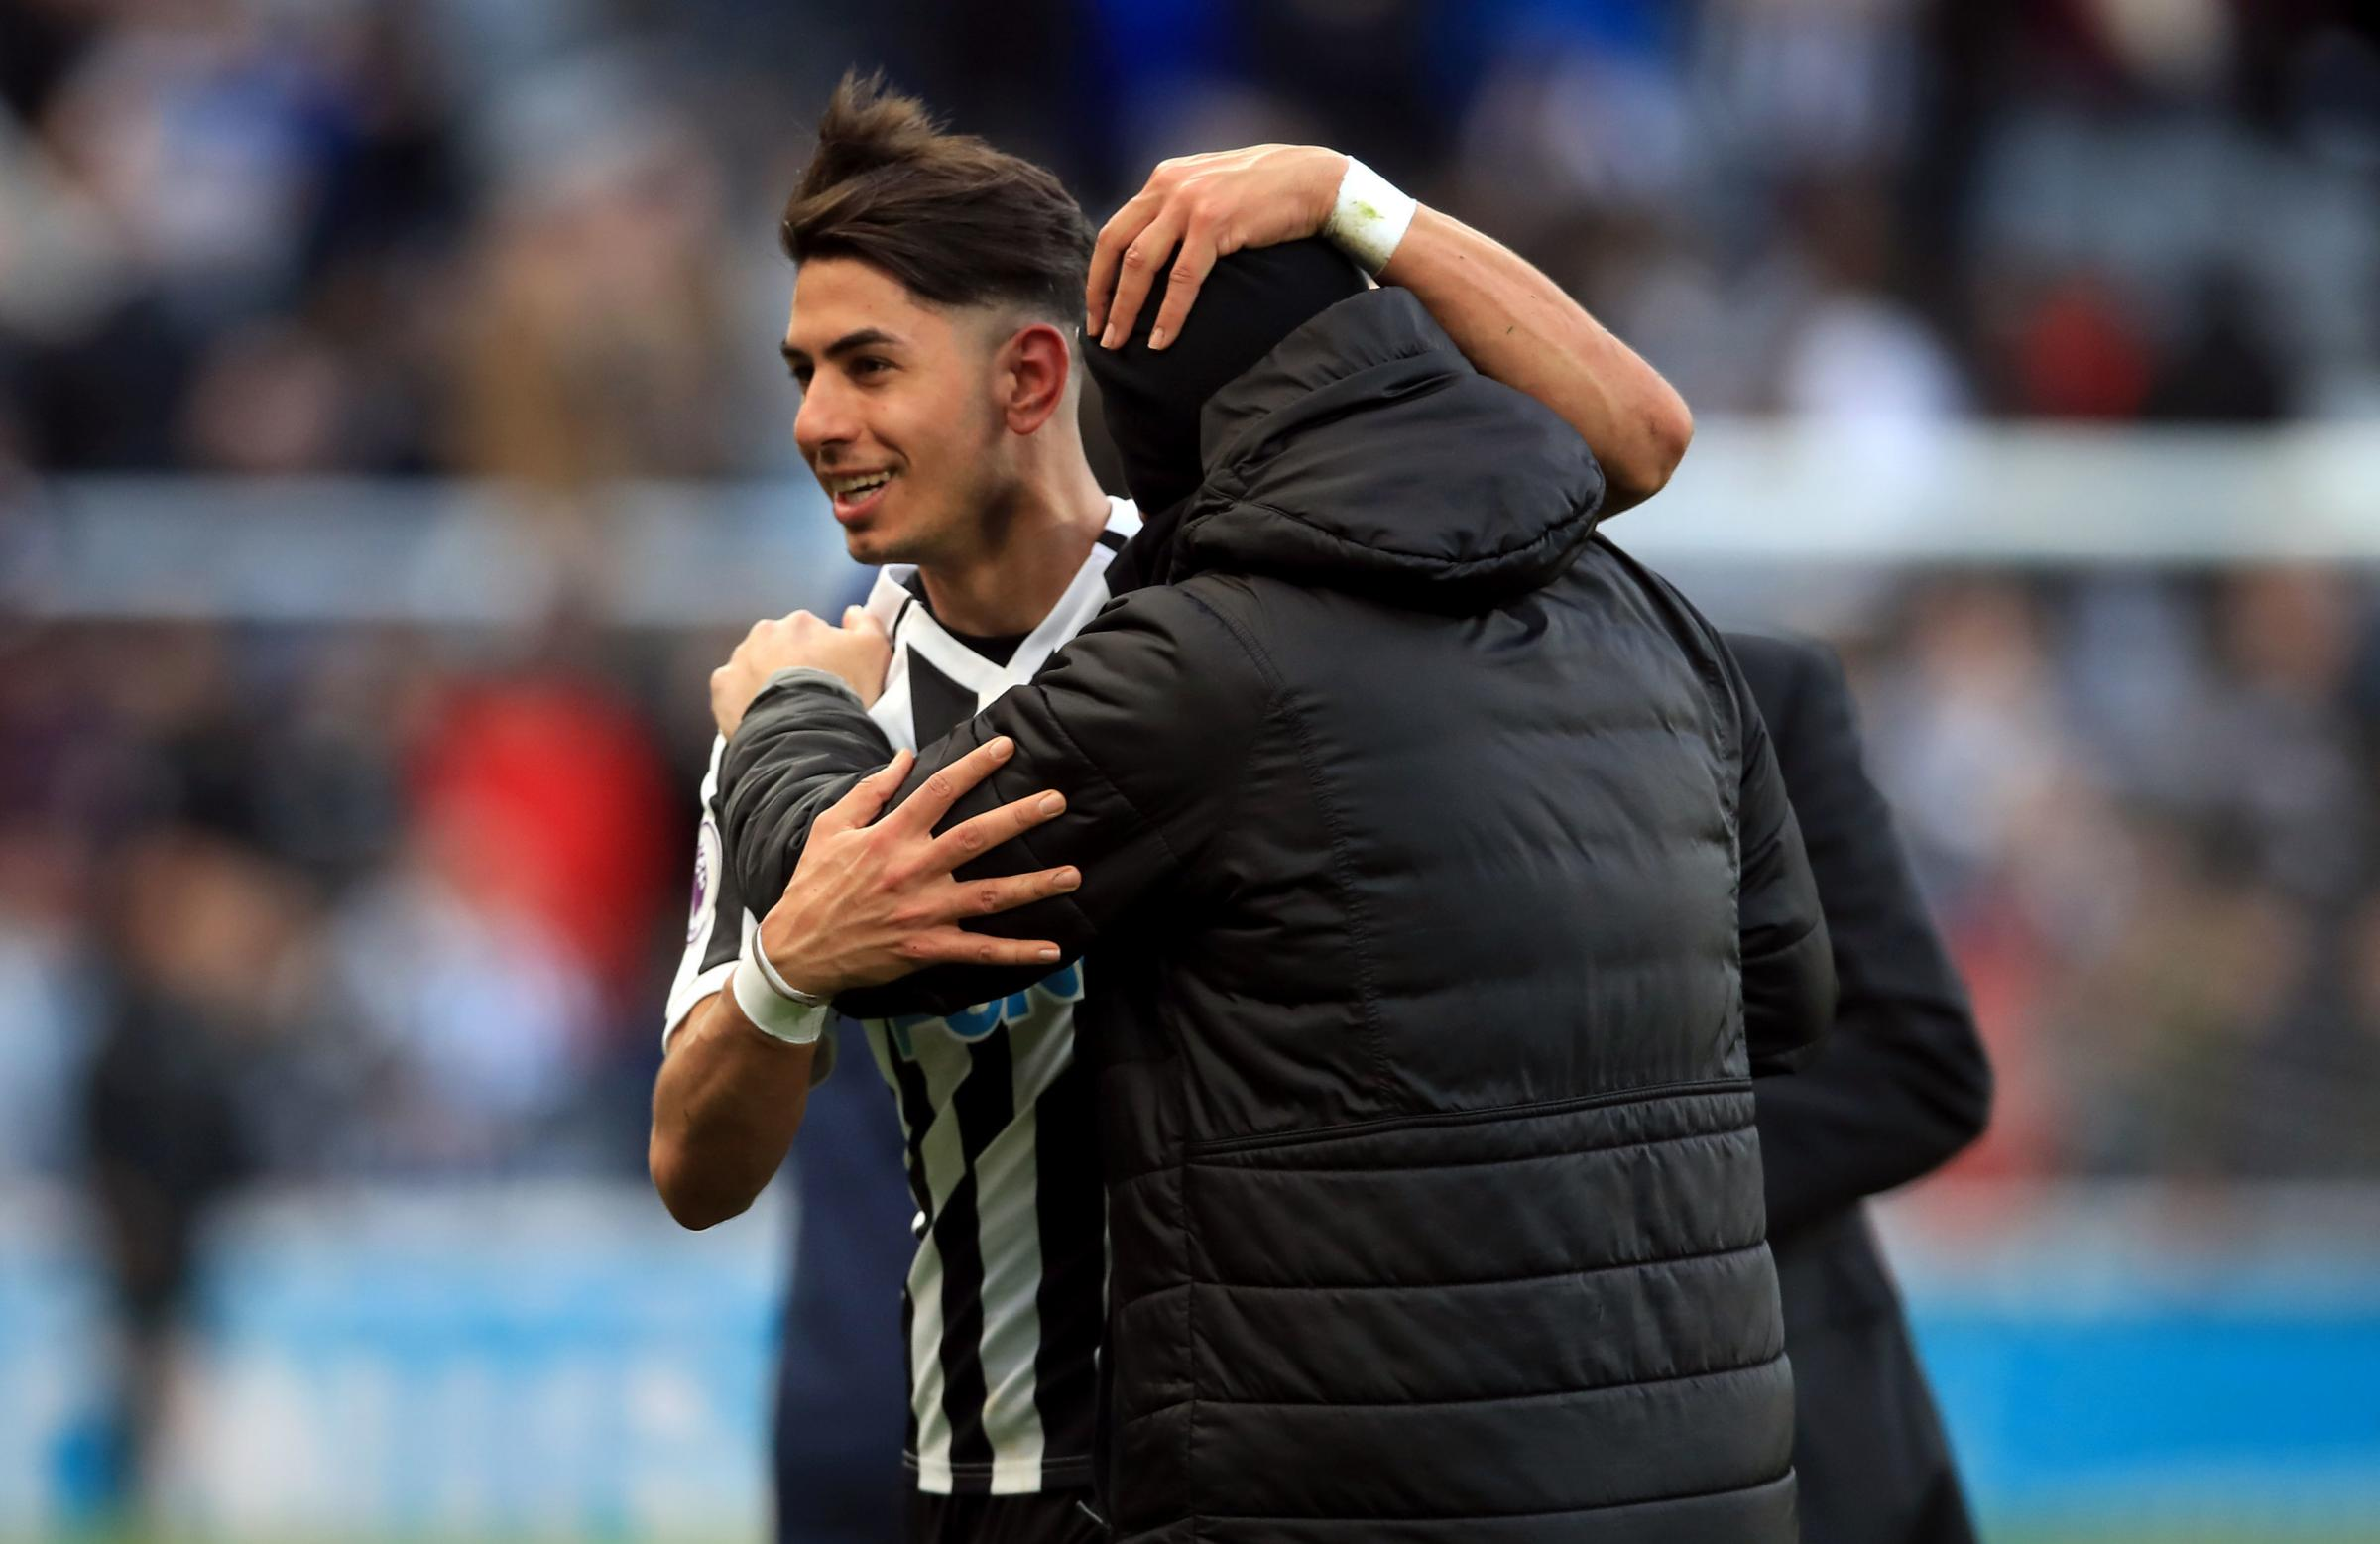 BRACE: Newcastle United's two-goal Ayoze Perez after today's 3-2 win against Everton